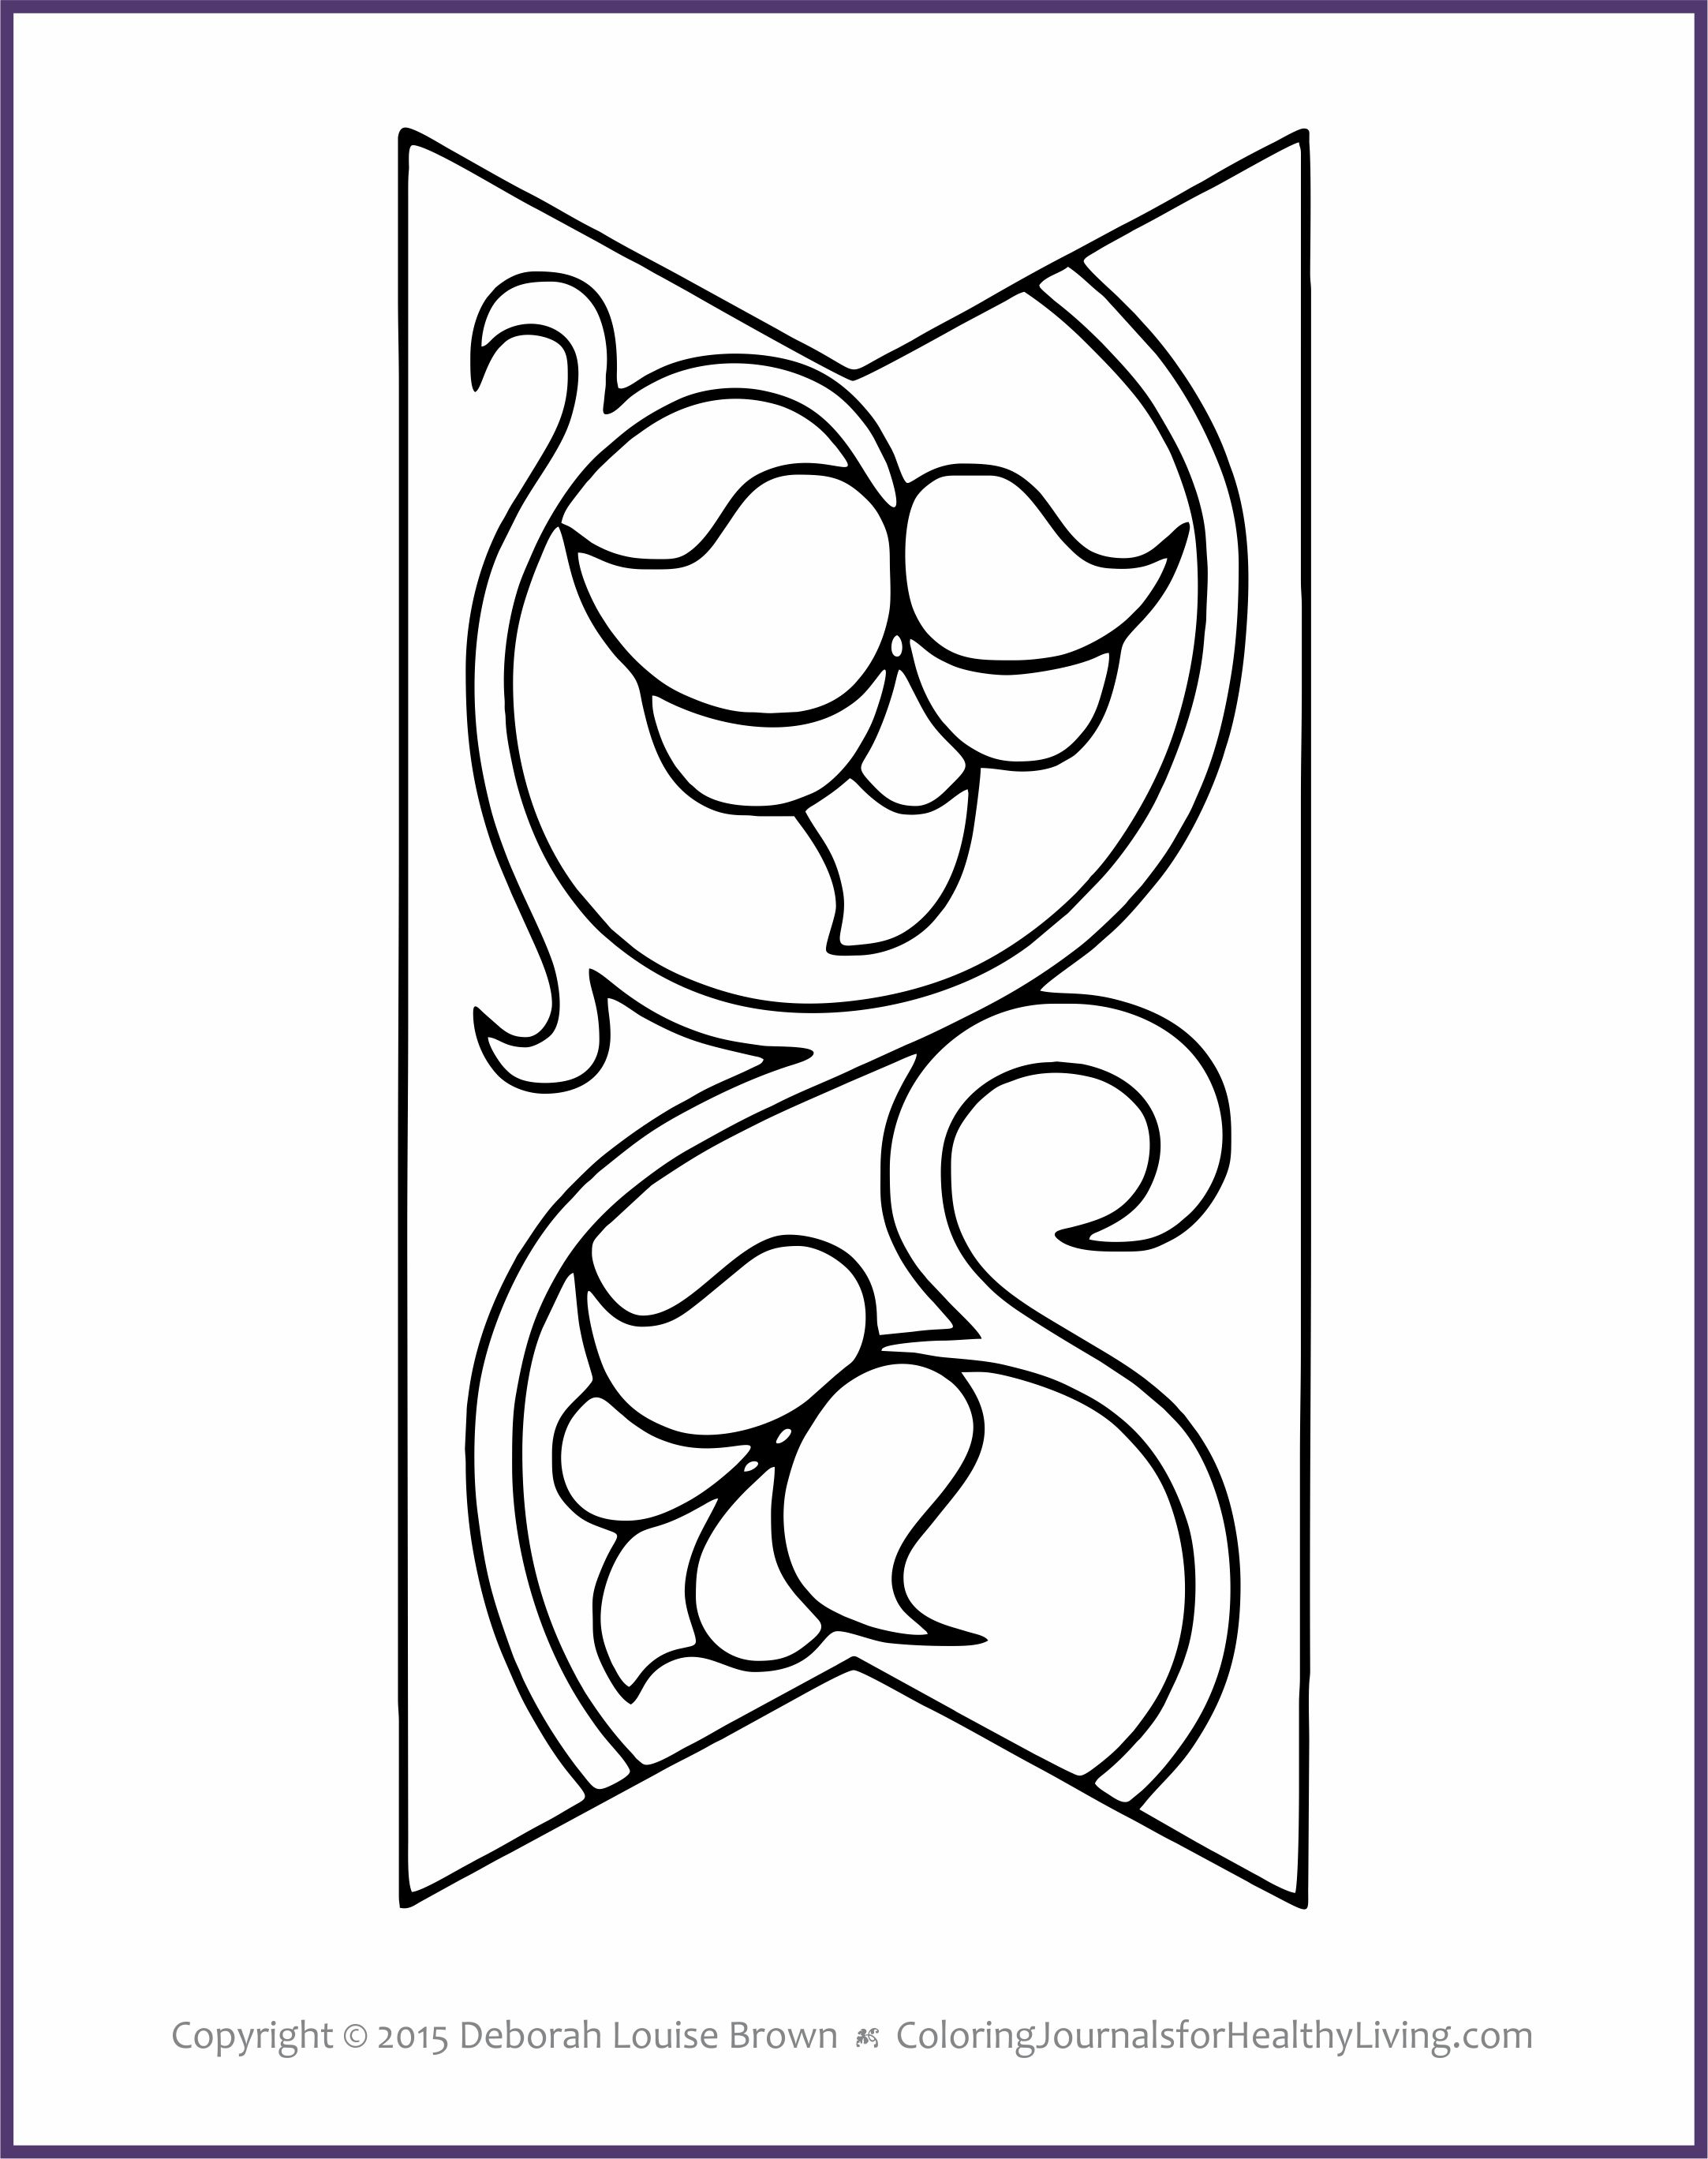 live healthy coloring pages - photo#13